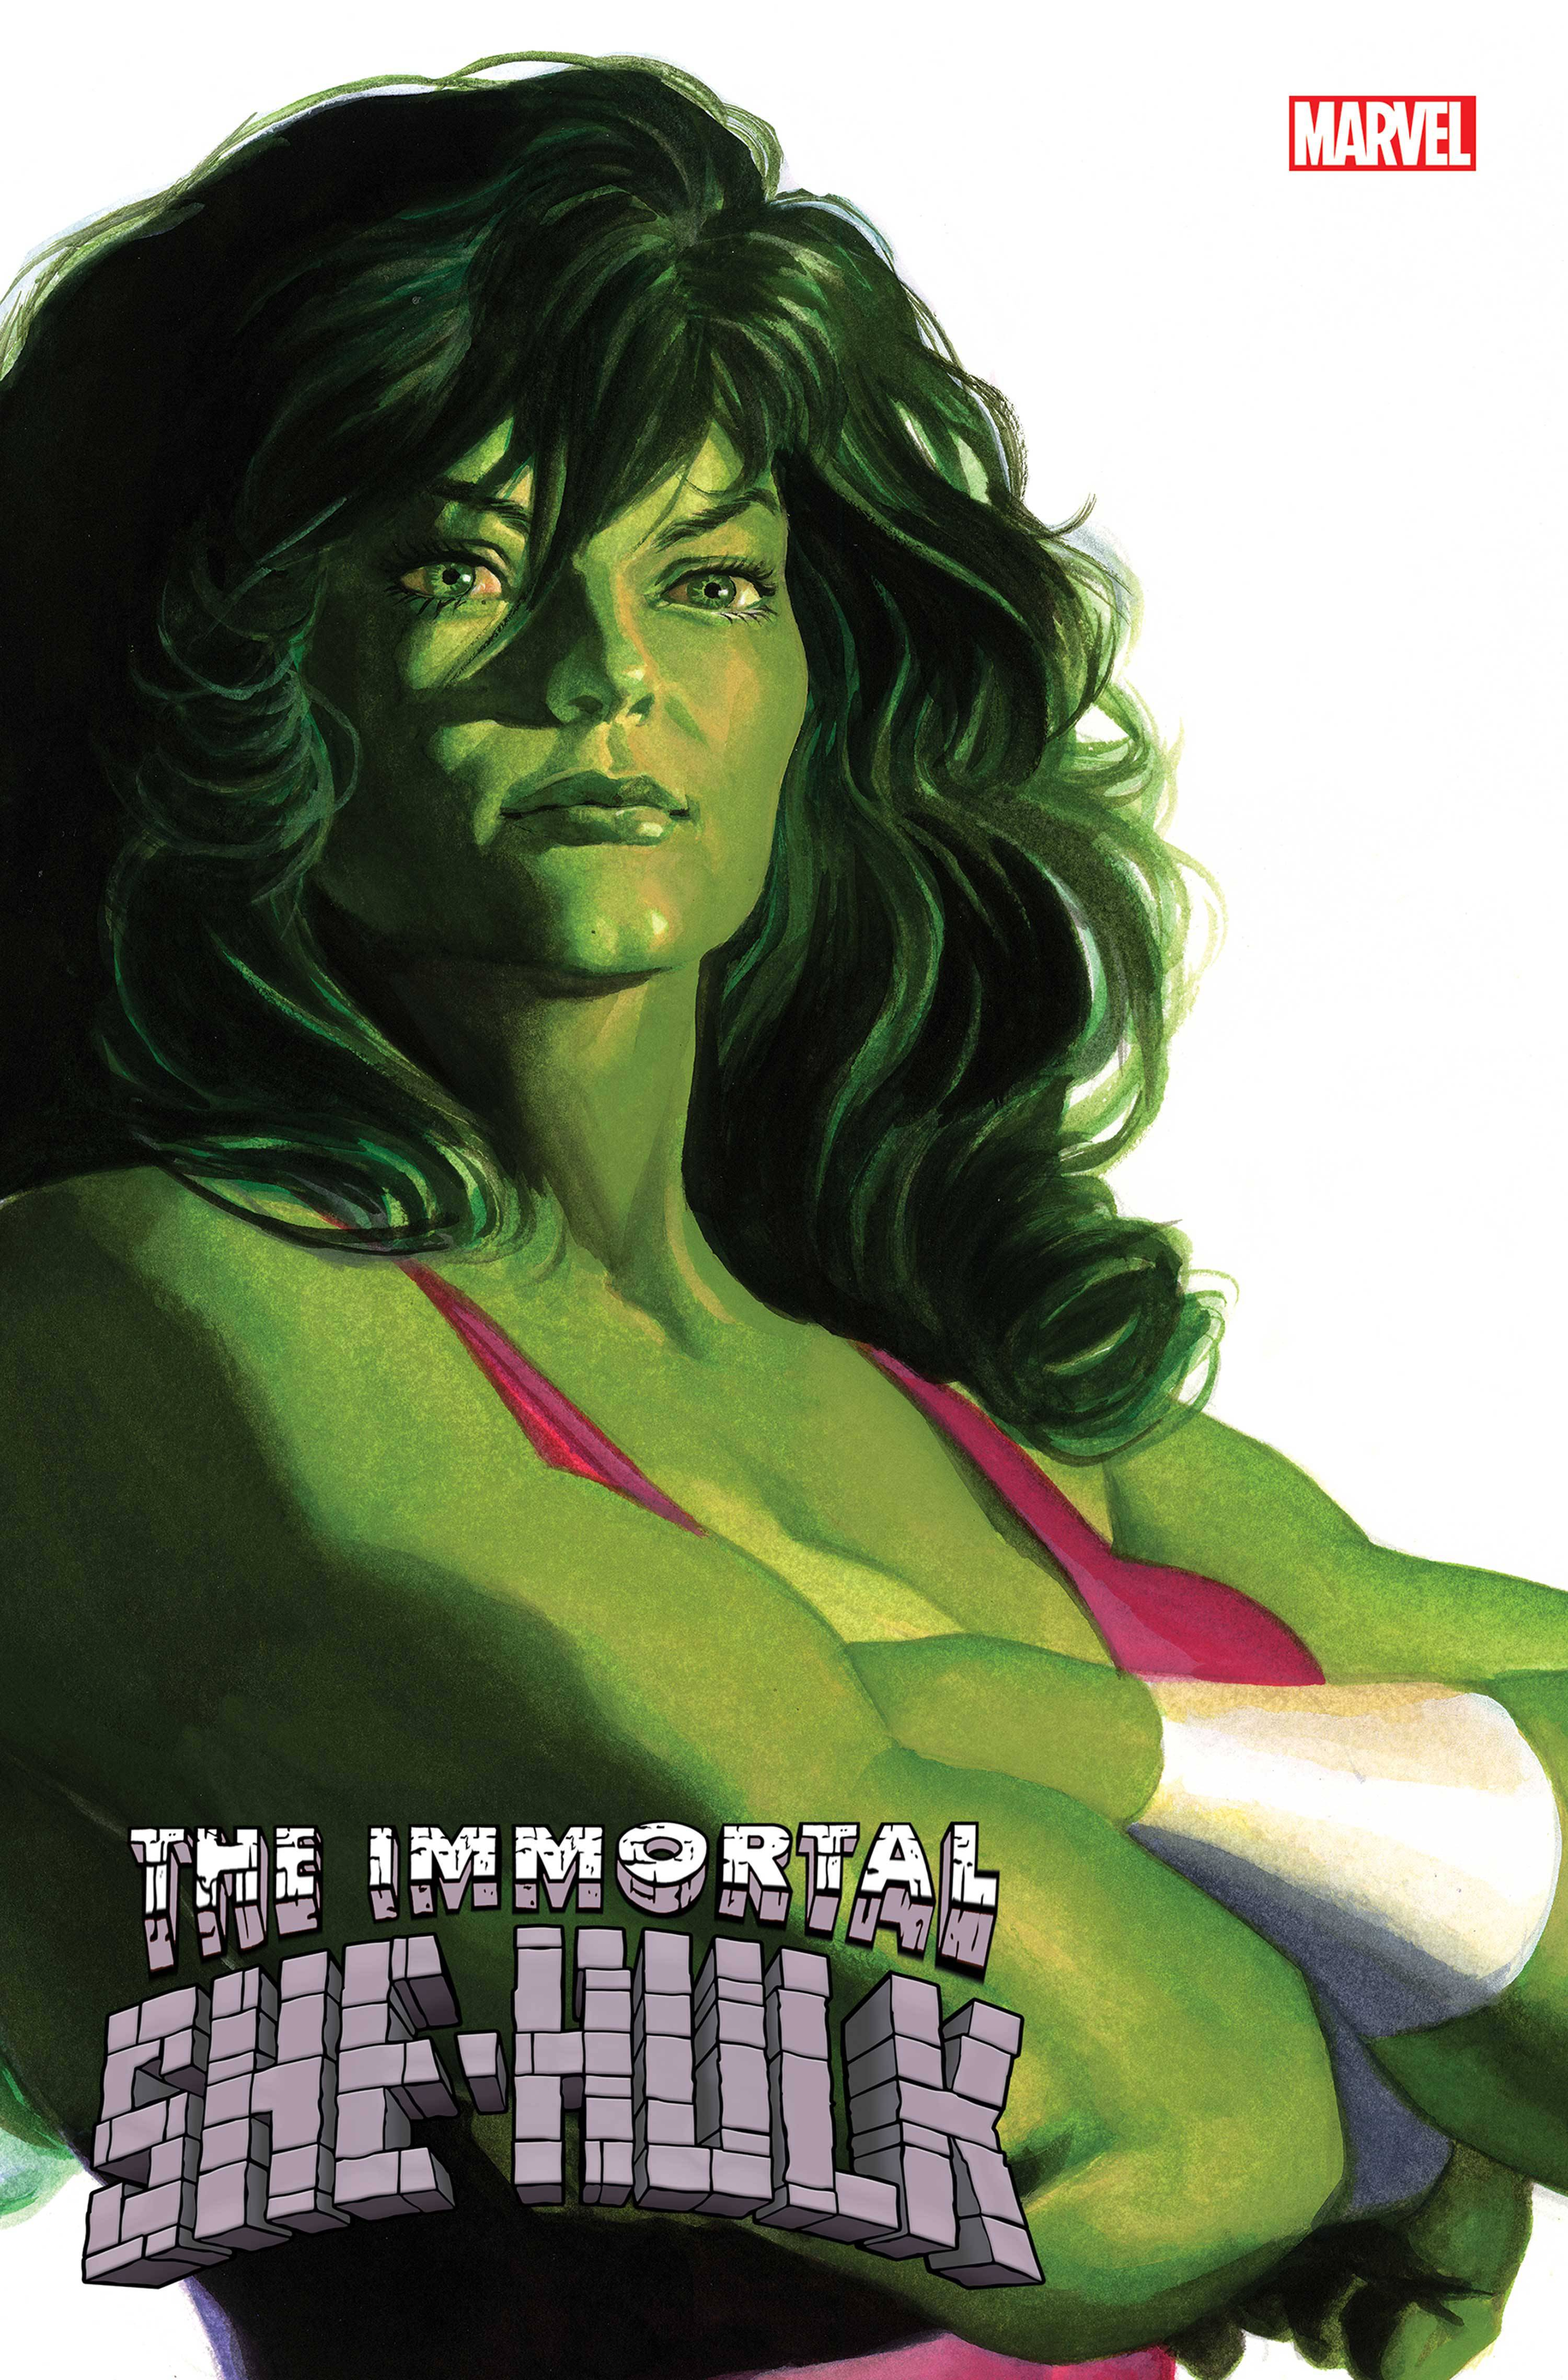 IMMORTAL SHE-HULK #1 ALEX ROSS SHE-HULK TIMELESS VAR